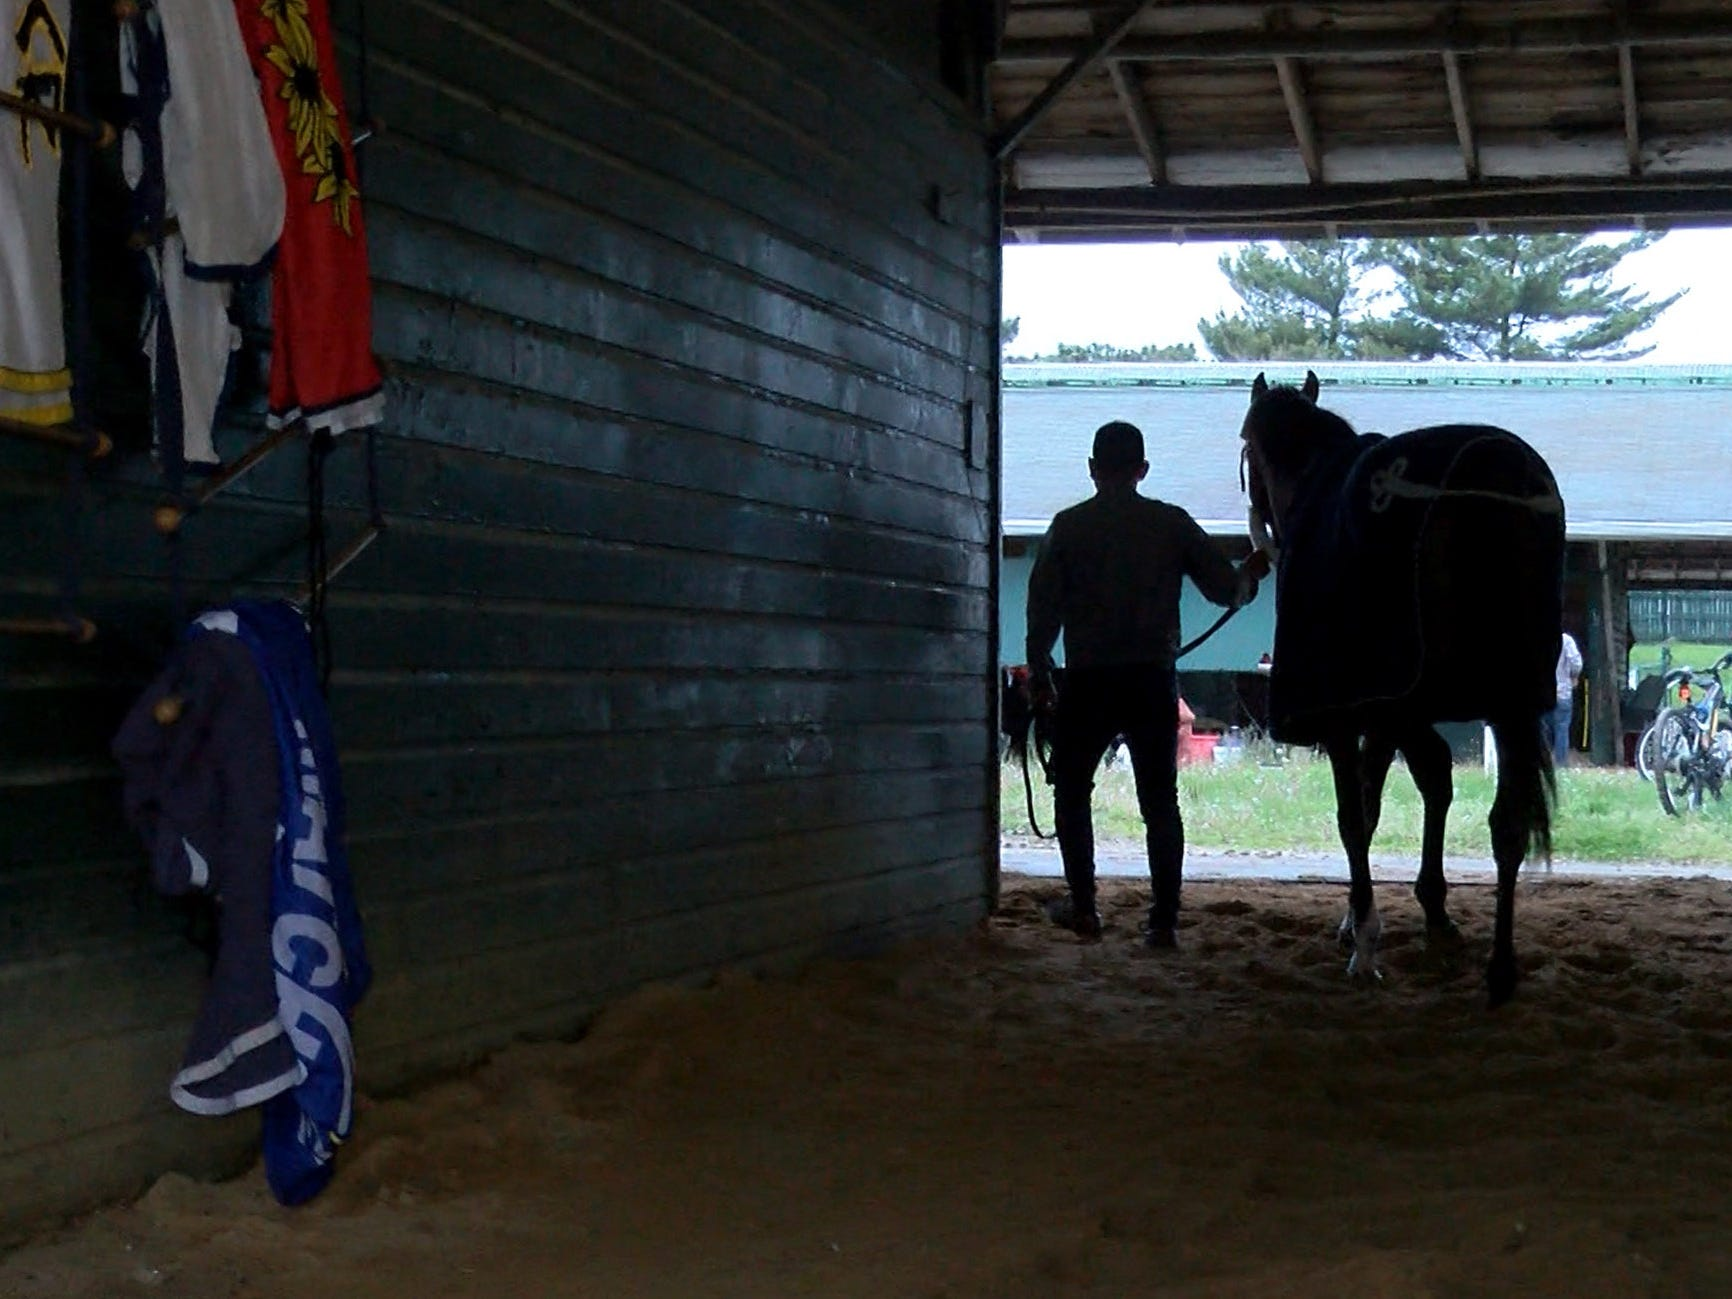 Edelberto Rivas leads Maximum Security, disqualified after winning the Kentucky Derby on Saturday, around Jason Servis' barn after arriving at Monmouth Park early Tuesday, May 7, 2019.